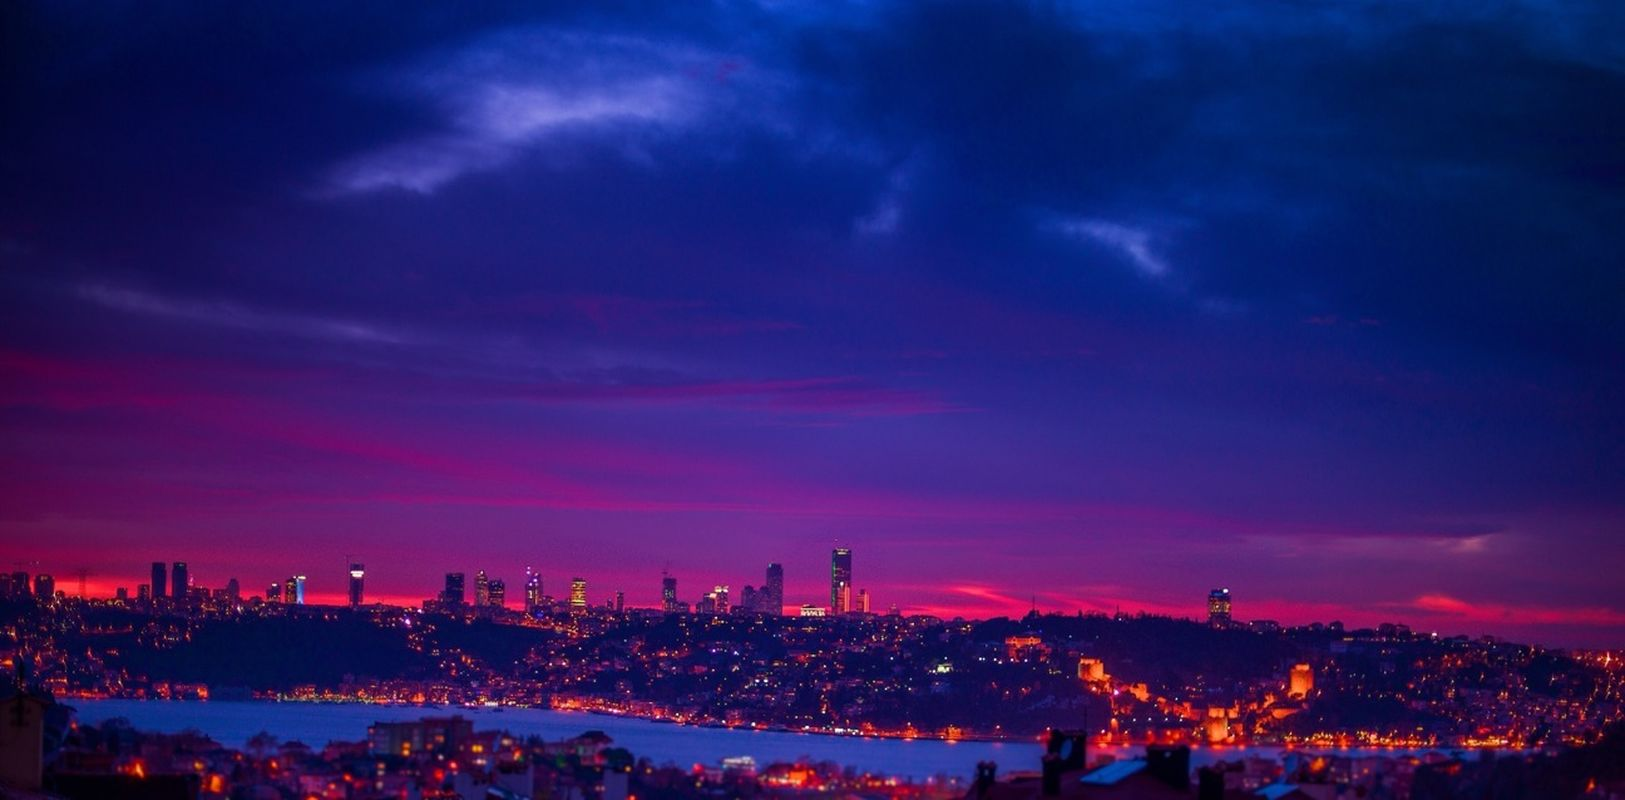 #sunset #sun #clouds #skylovers #sky #nature #beautifulinnature #naturalbeauty #photography #landscape eye4photography  bisgen Relaxing instagood sunset landscape Taking Photos blue Night Lights Red clouds and sky Istanbul popular Hello world Great atmosphere instagram by Ersin Bisgen